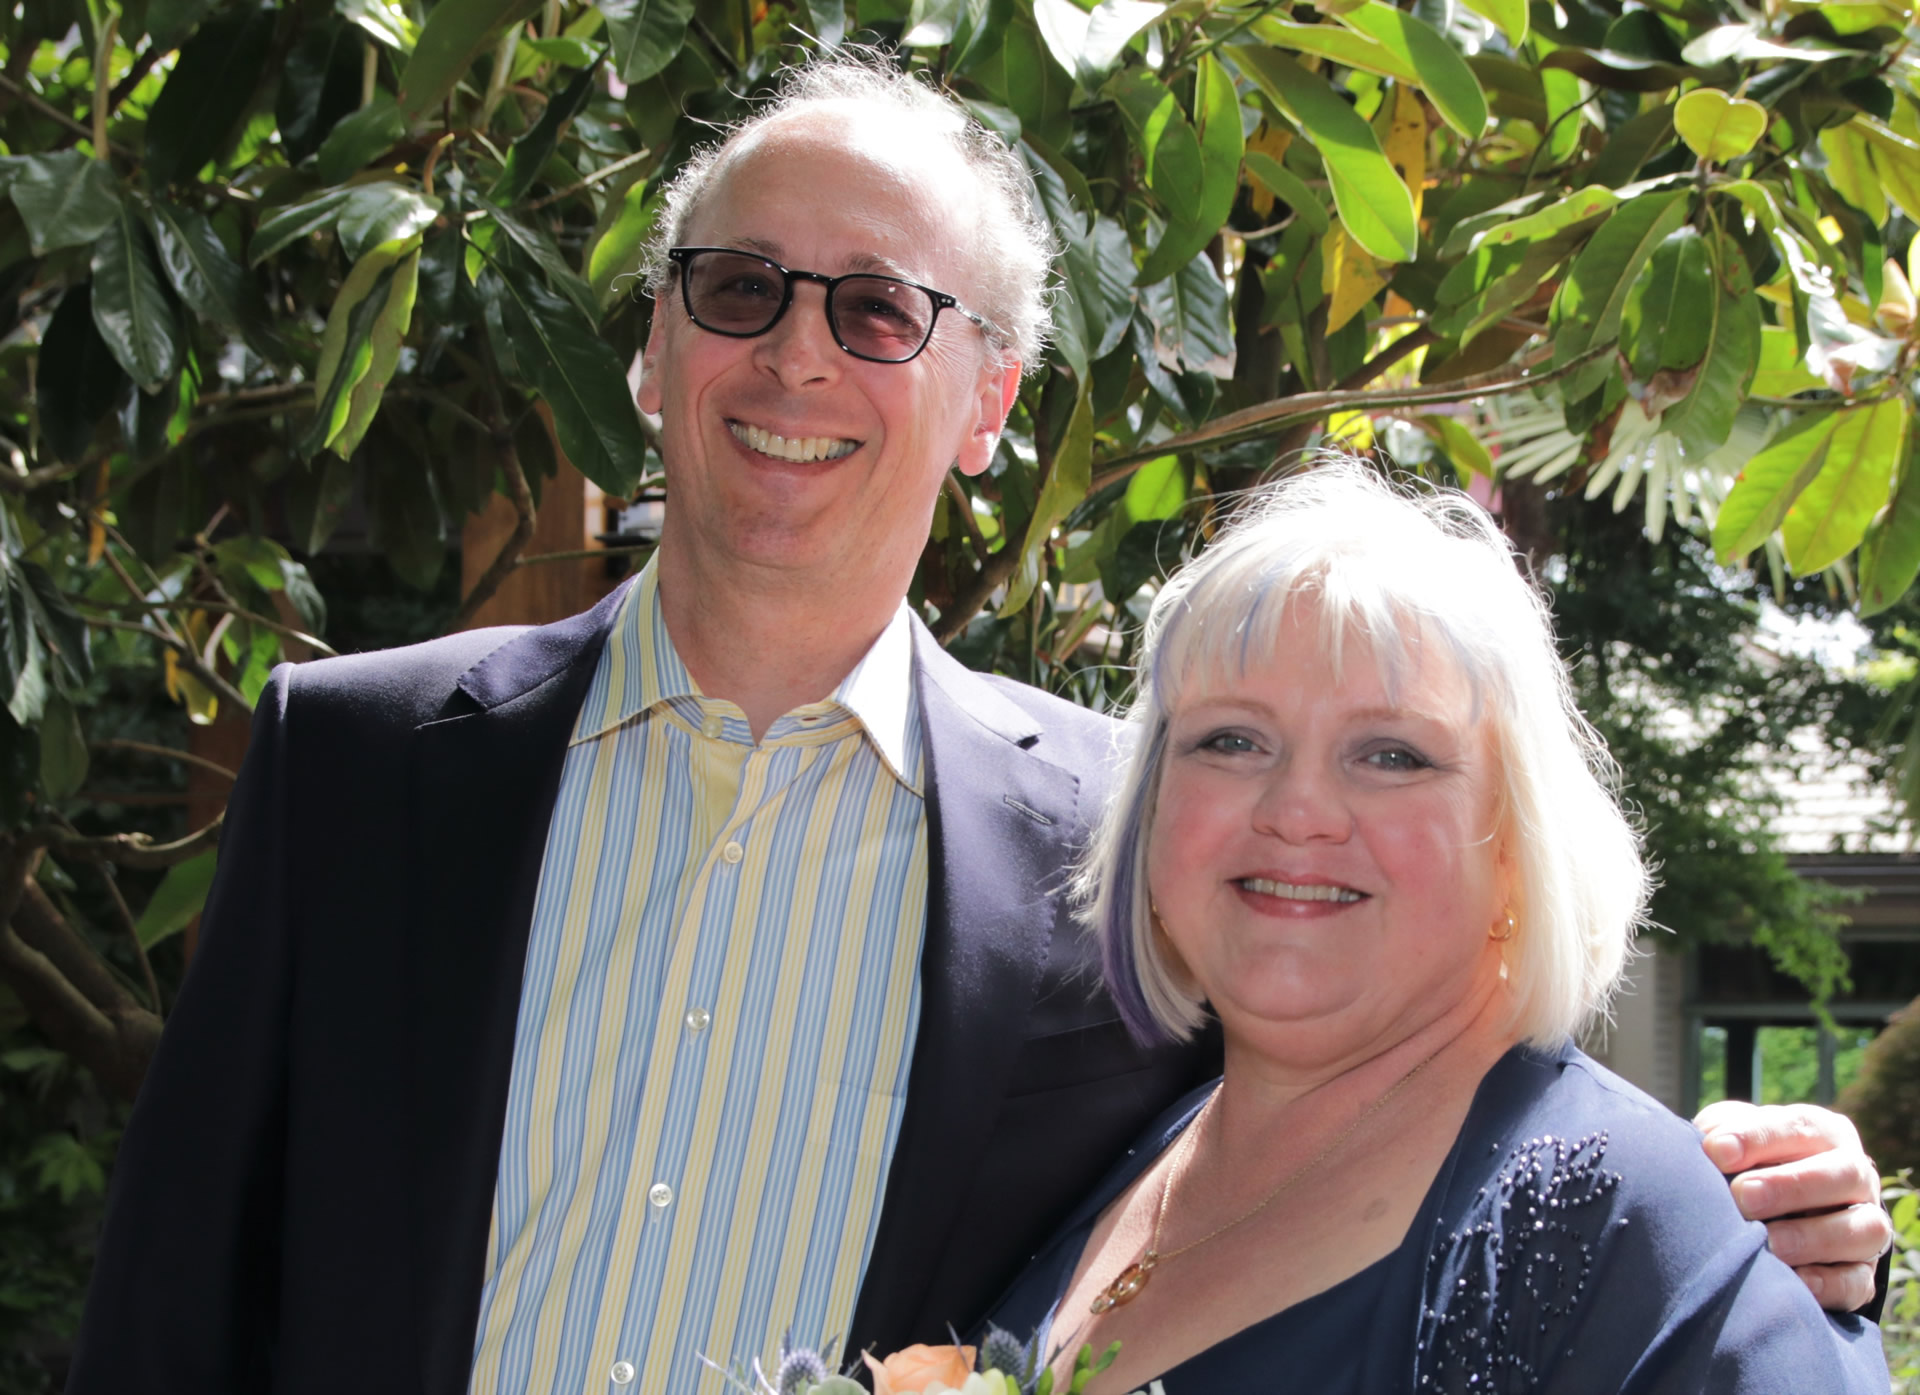 SGBIA Board President Leonard Ruppenthal and Executive Director Sharon Townsend